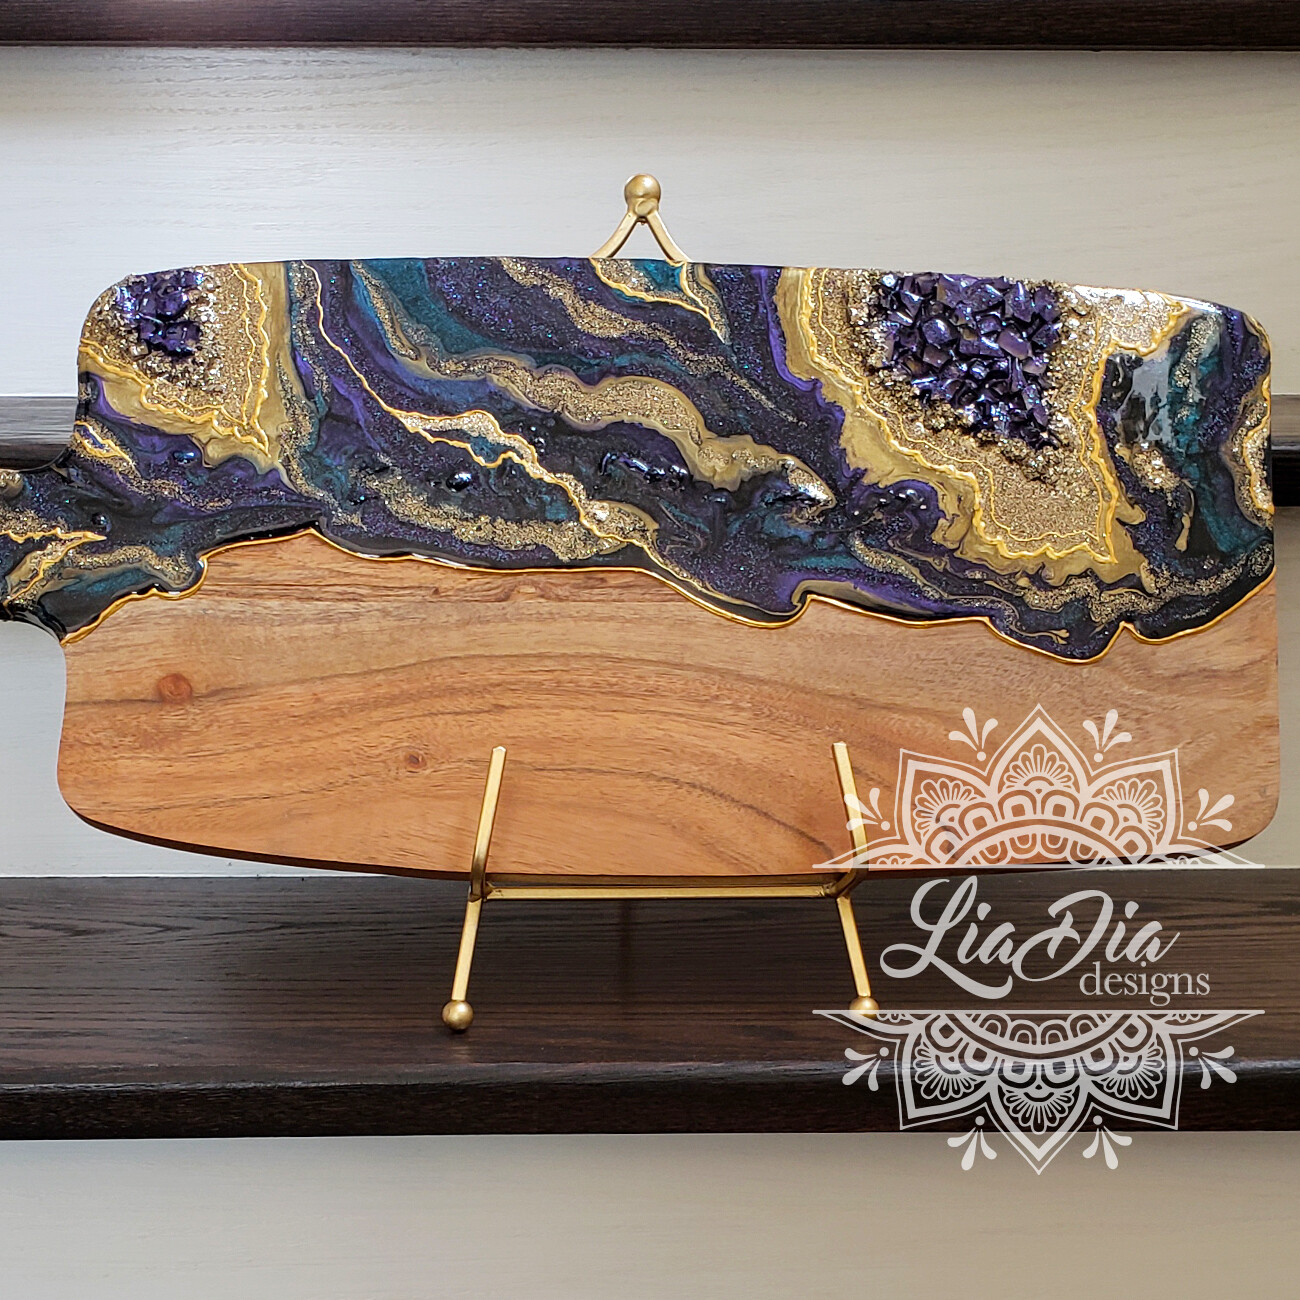 Deep Amethyst Resin Geode Style Charcuterie Cheese Paddle Board